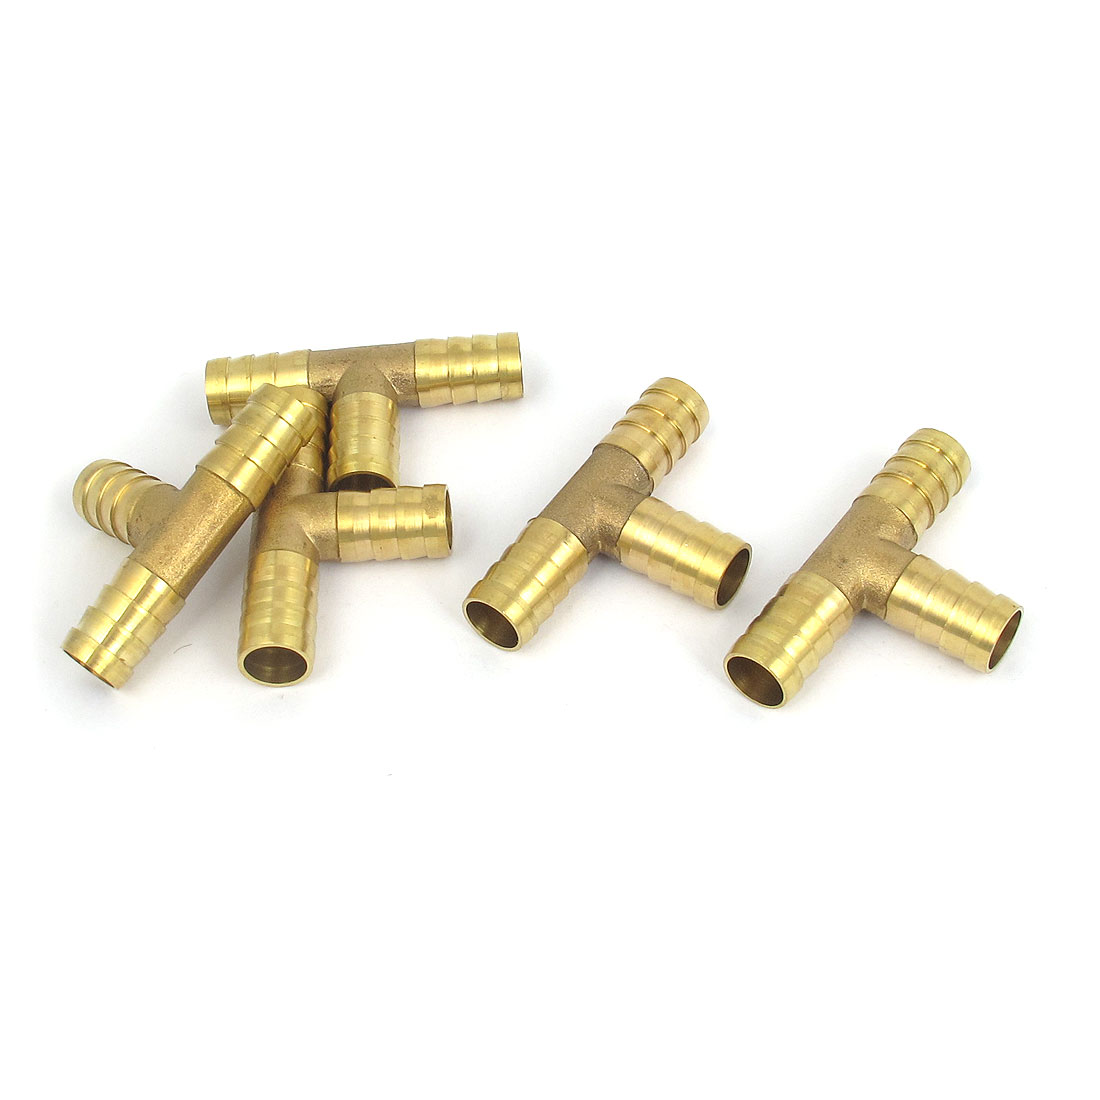 5 Pcs Brass T-Shape 3 Ways Hose Barb Fitting Adapter Coupler Connector 12mm Dia